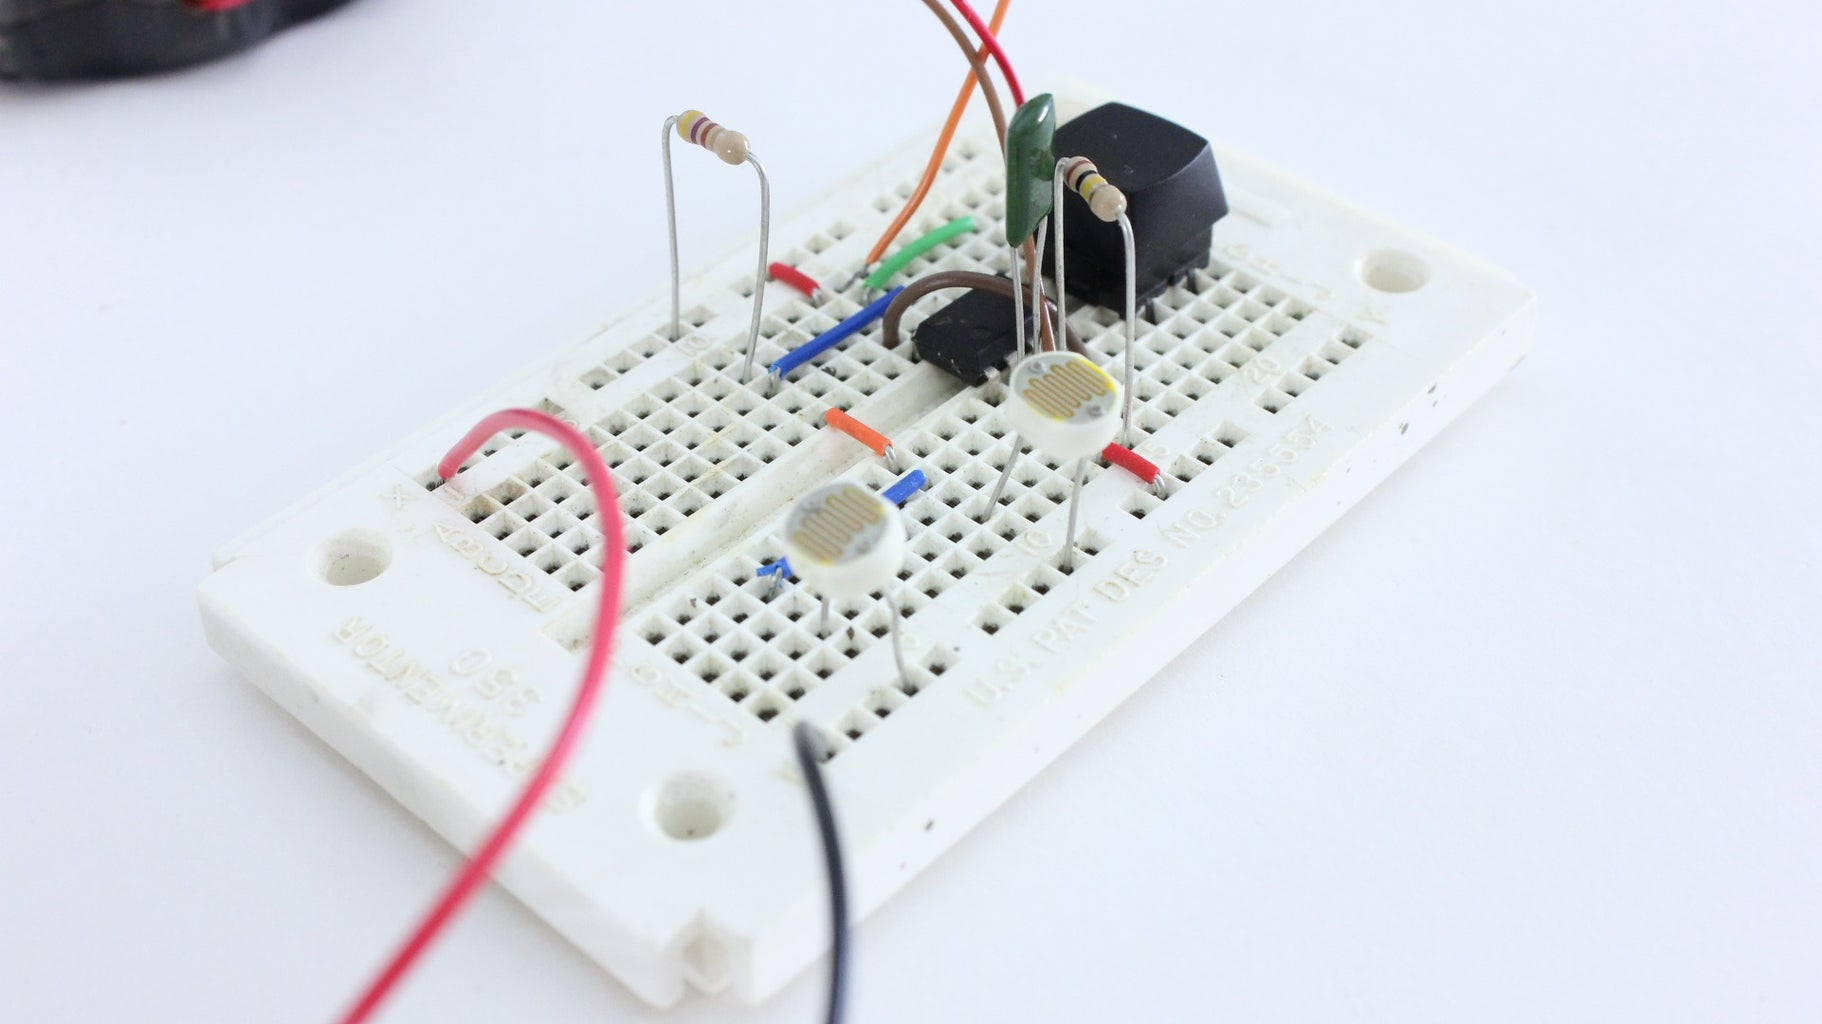 Prototype the Control Circuit on a Breadboard